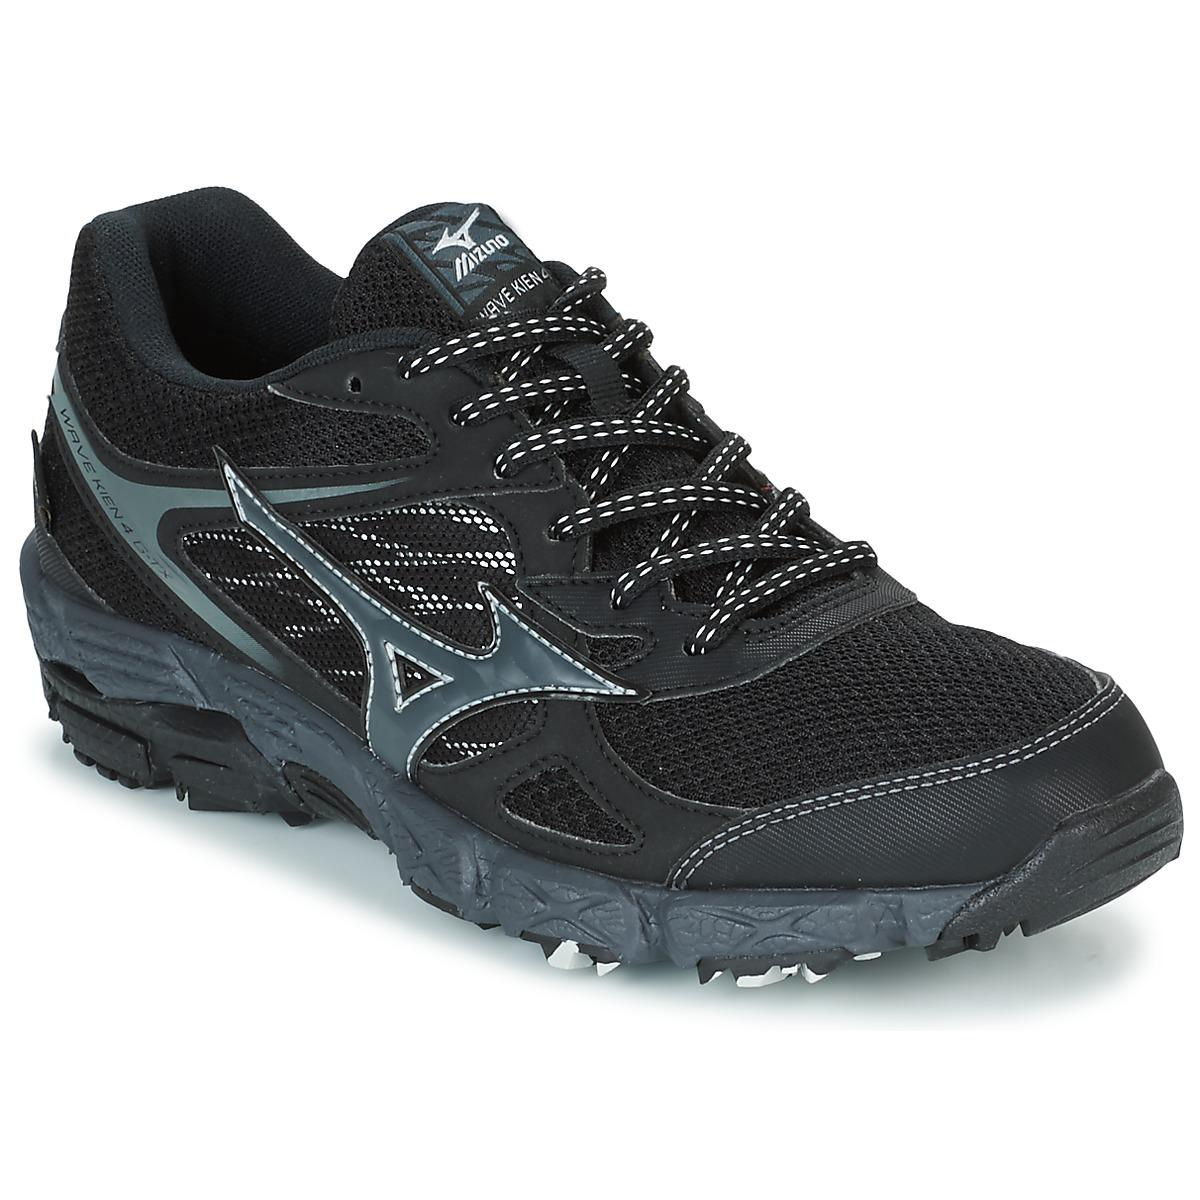 Mizuno Wave Kien 4 G-tx (w) Women s Running Trainers In Black in ... a1923f4cd5d